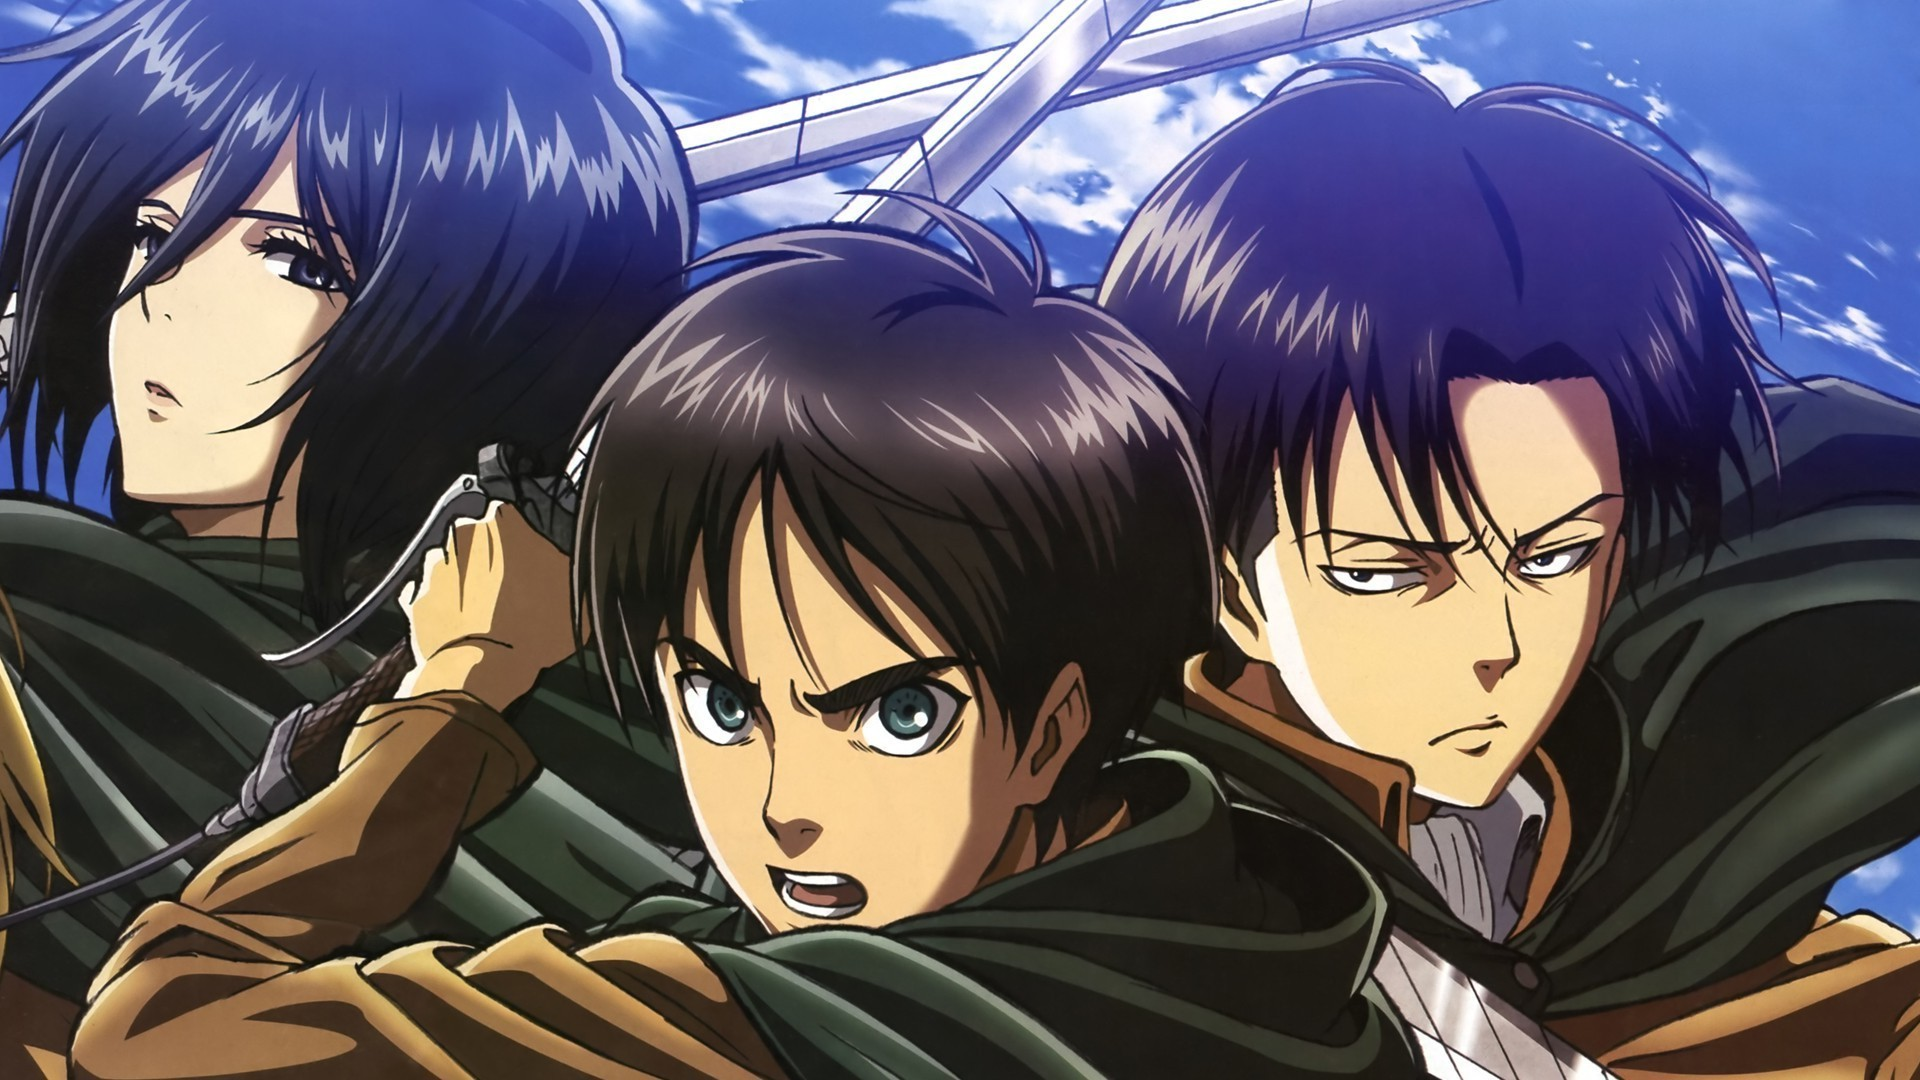 65 Eren And Levi Android Iphone Desktop Hd Backgrounds Wallpapers 1080p 4k 1920x1080 2020